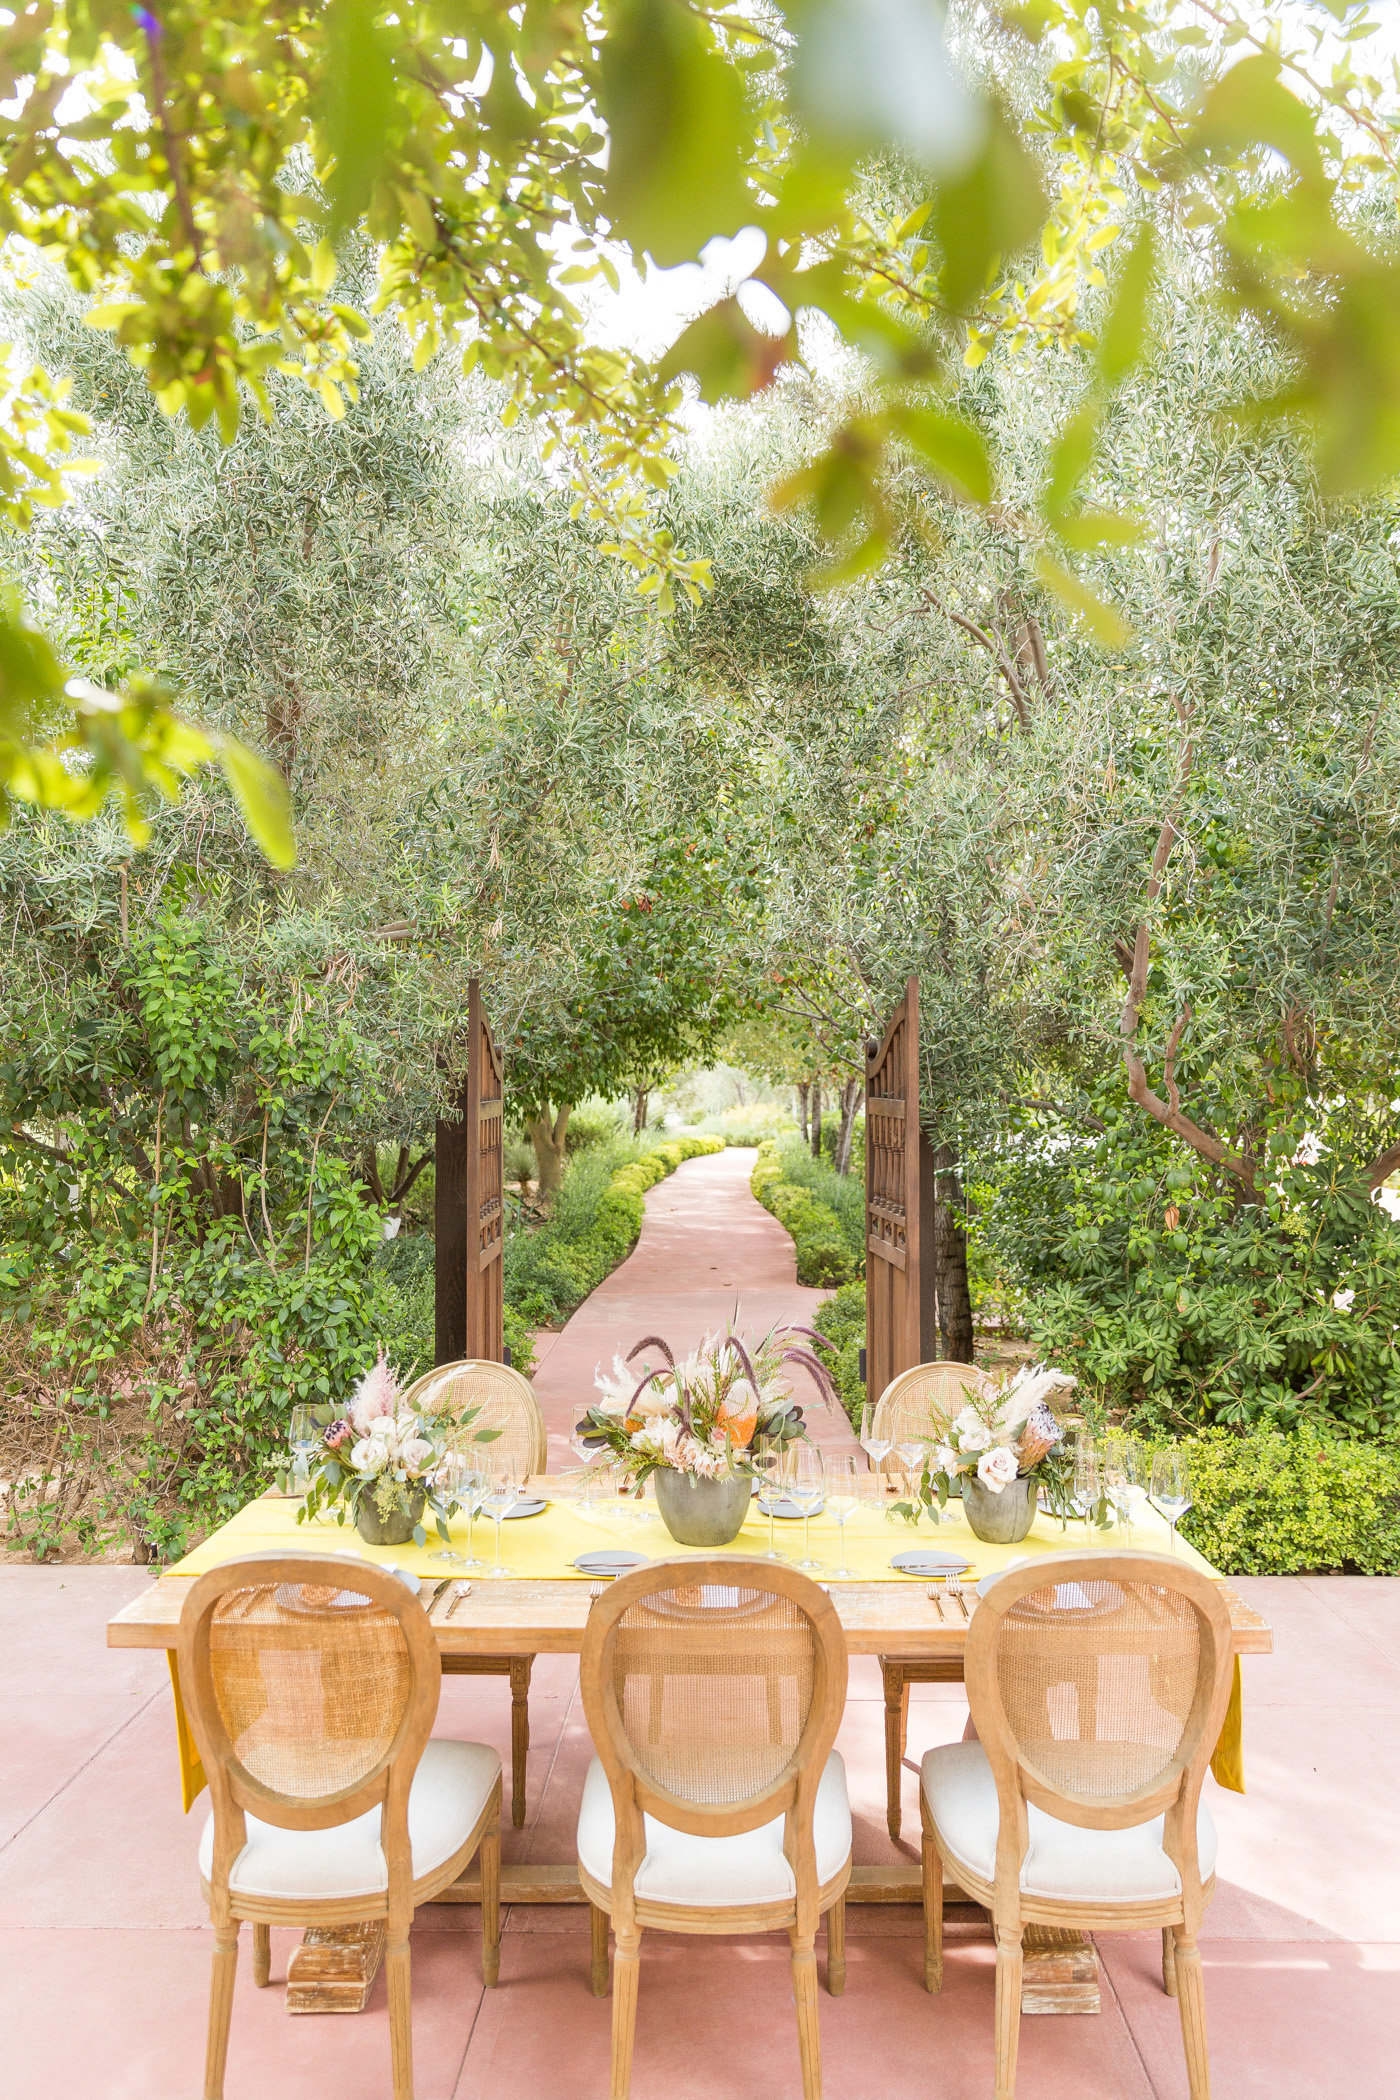 summer wedding tables - photo by Karlee K Photography http://ruffledblog.com/cheerful-desert-wedding-inspiration-with-bright-yellow